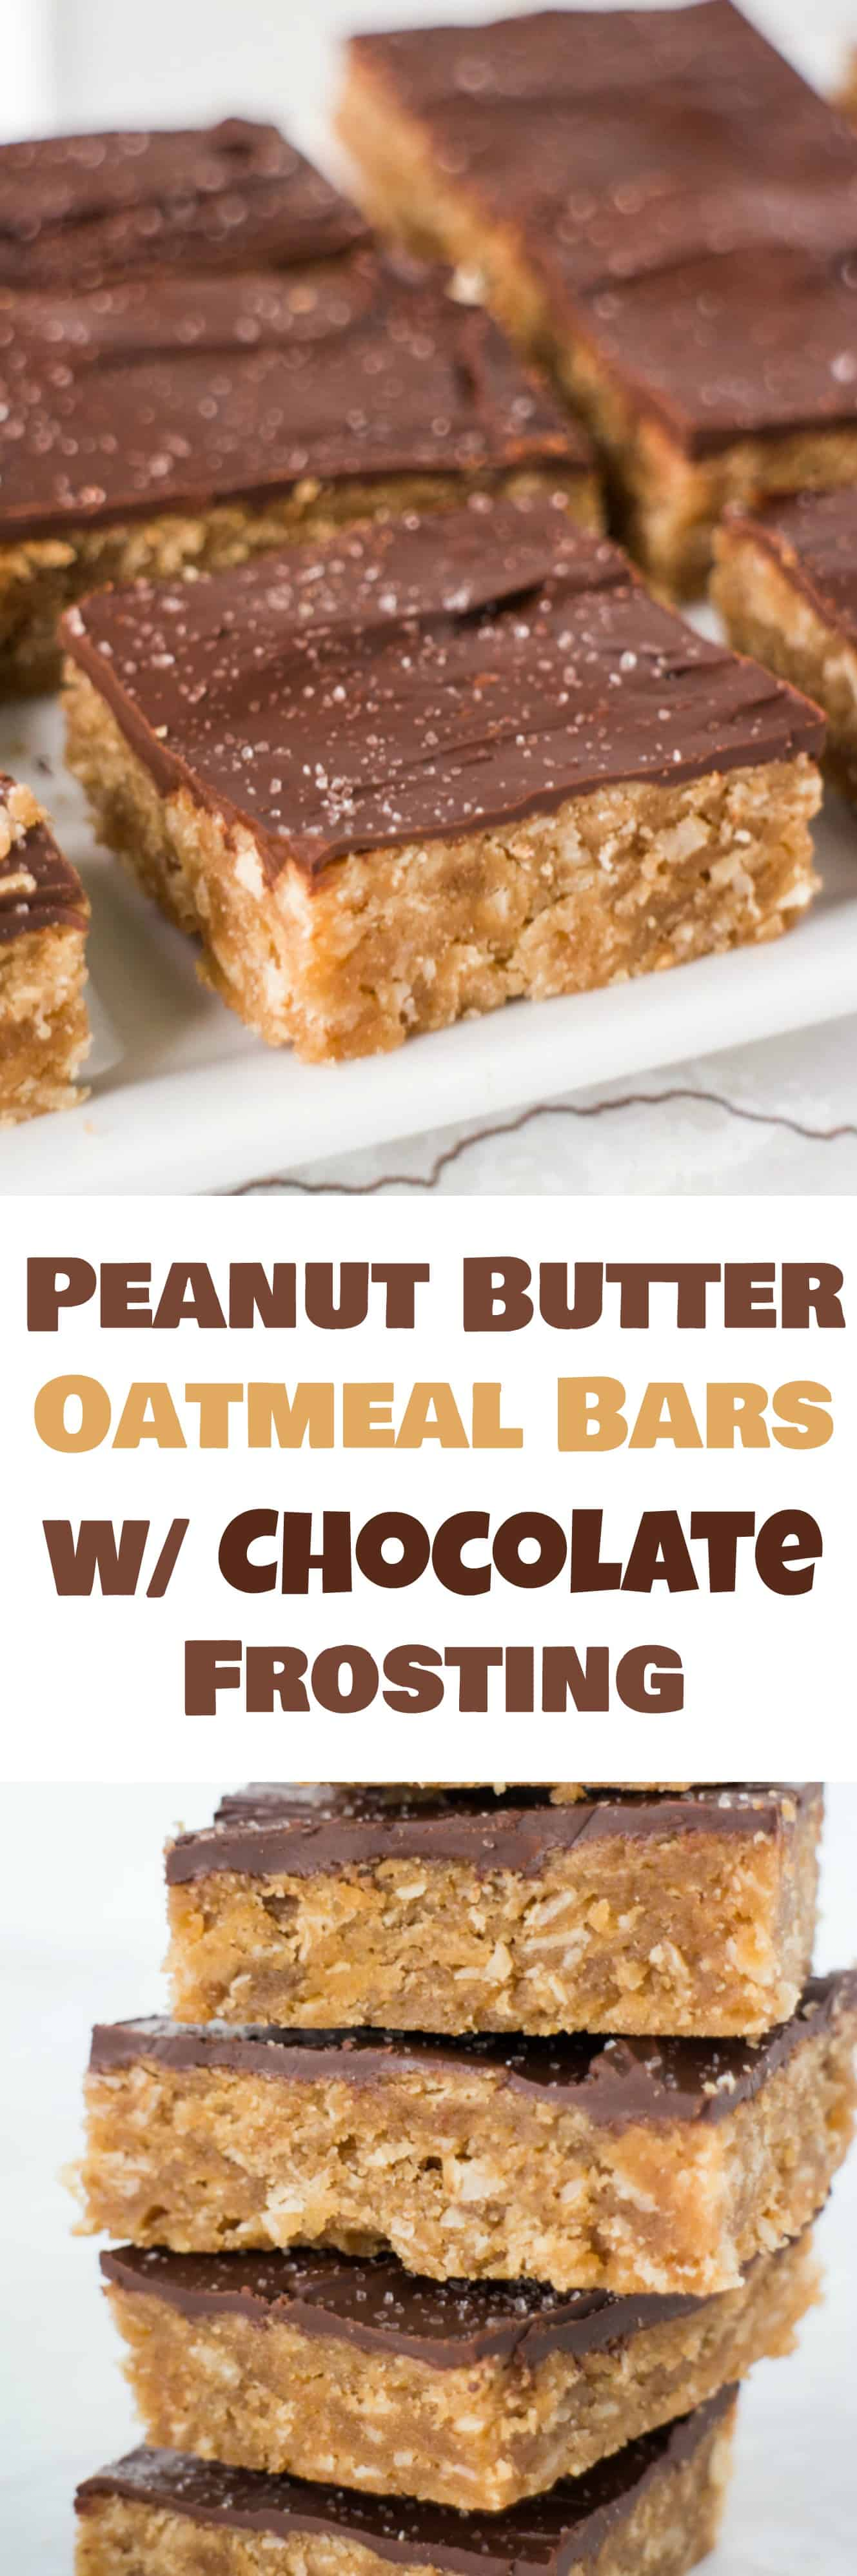 Guilt-free Peanut Butter Oatmeal Bars with Melted Chocolate Frosting on top! You'll love how easy this recipe is and how these bars don't fall apart! These bars are great for breakfast or dessert and are packed with protein! To keep it light on calories substitute 1/2 cup Stevia Blend instead of sugar.